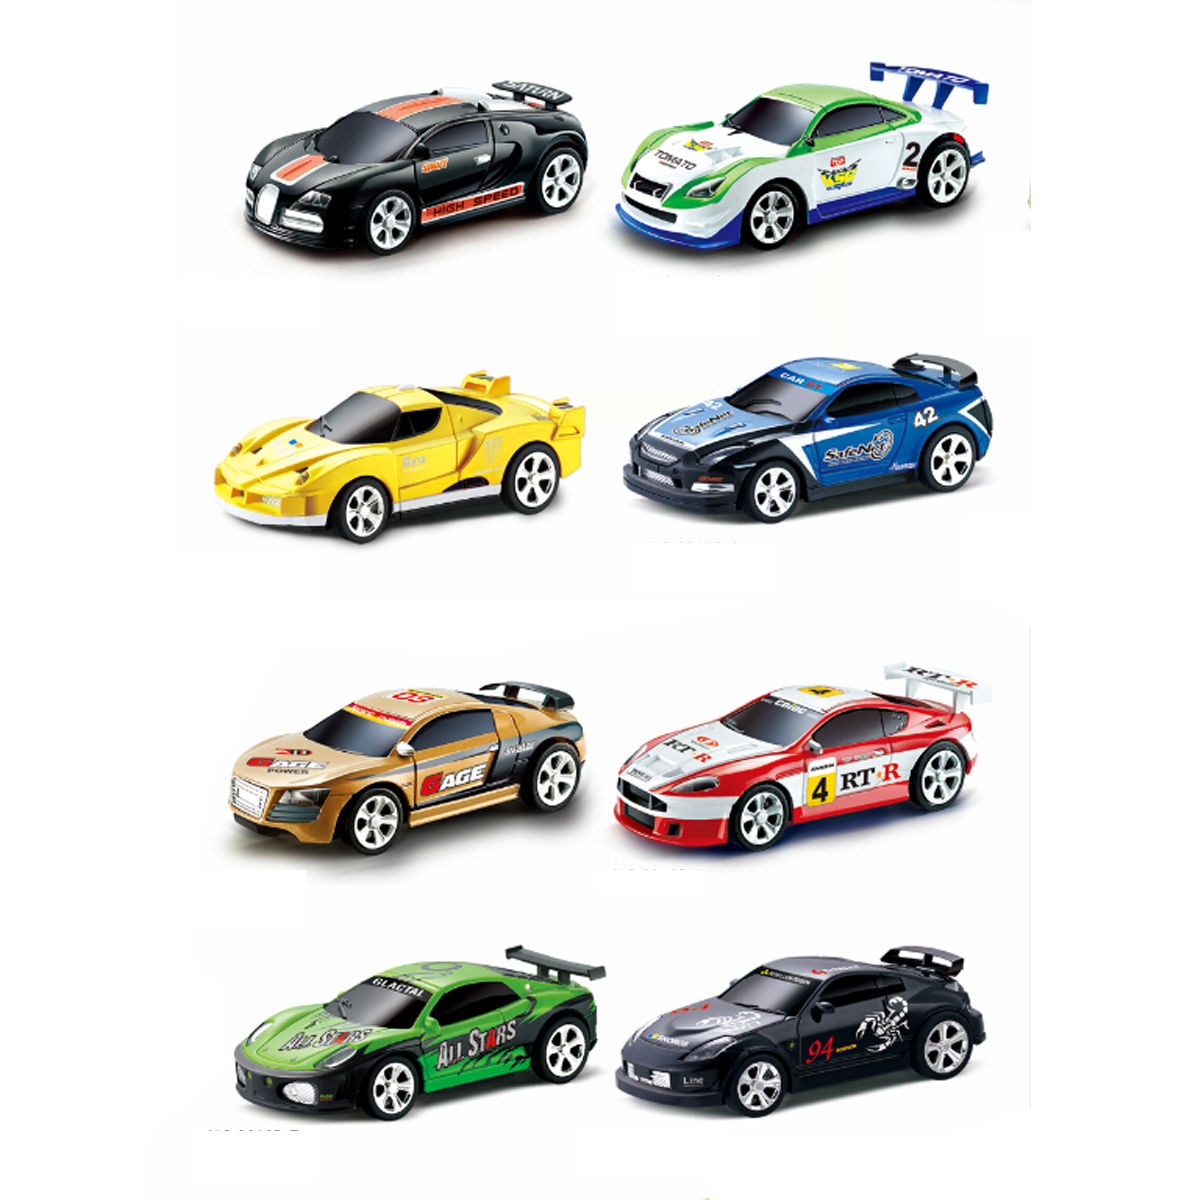 remote control cars on ebay with 262485752147 on 7C 7Ccdn static ovimg   7Cepisode 7C1551471 likewise 171954968110 moreover 361289925878 besides 262485752147 as well 201653932705.